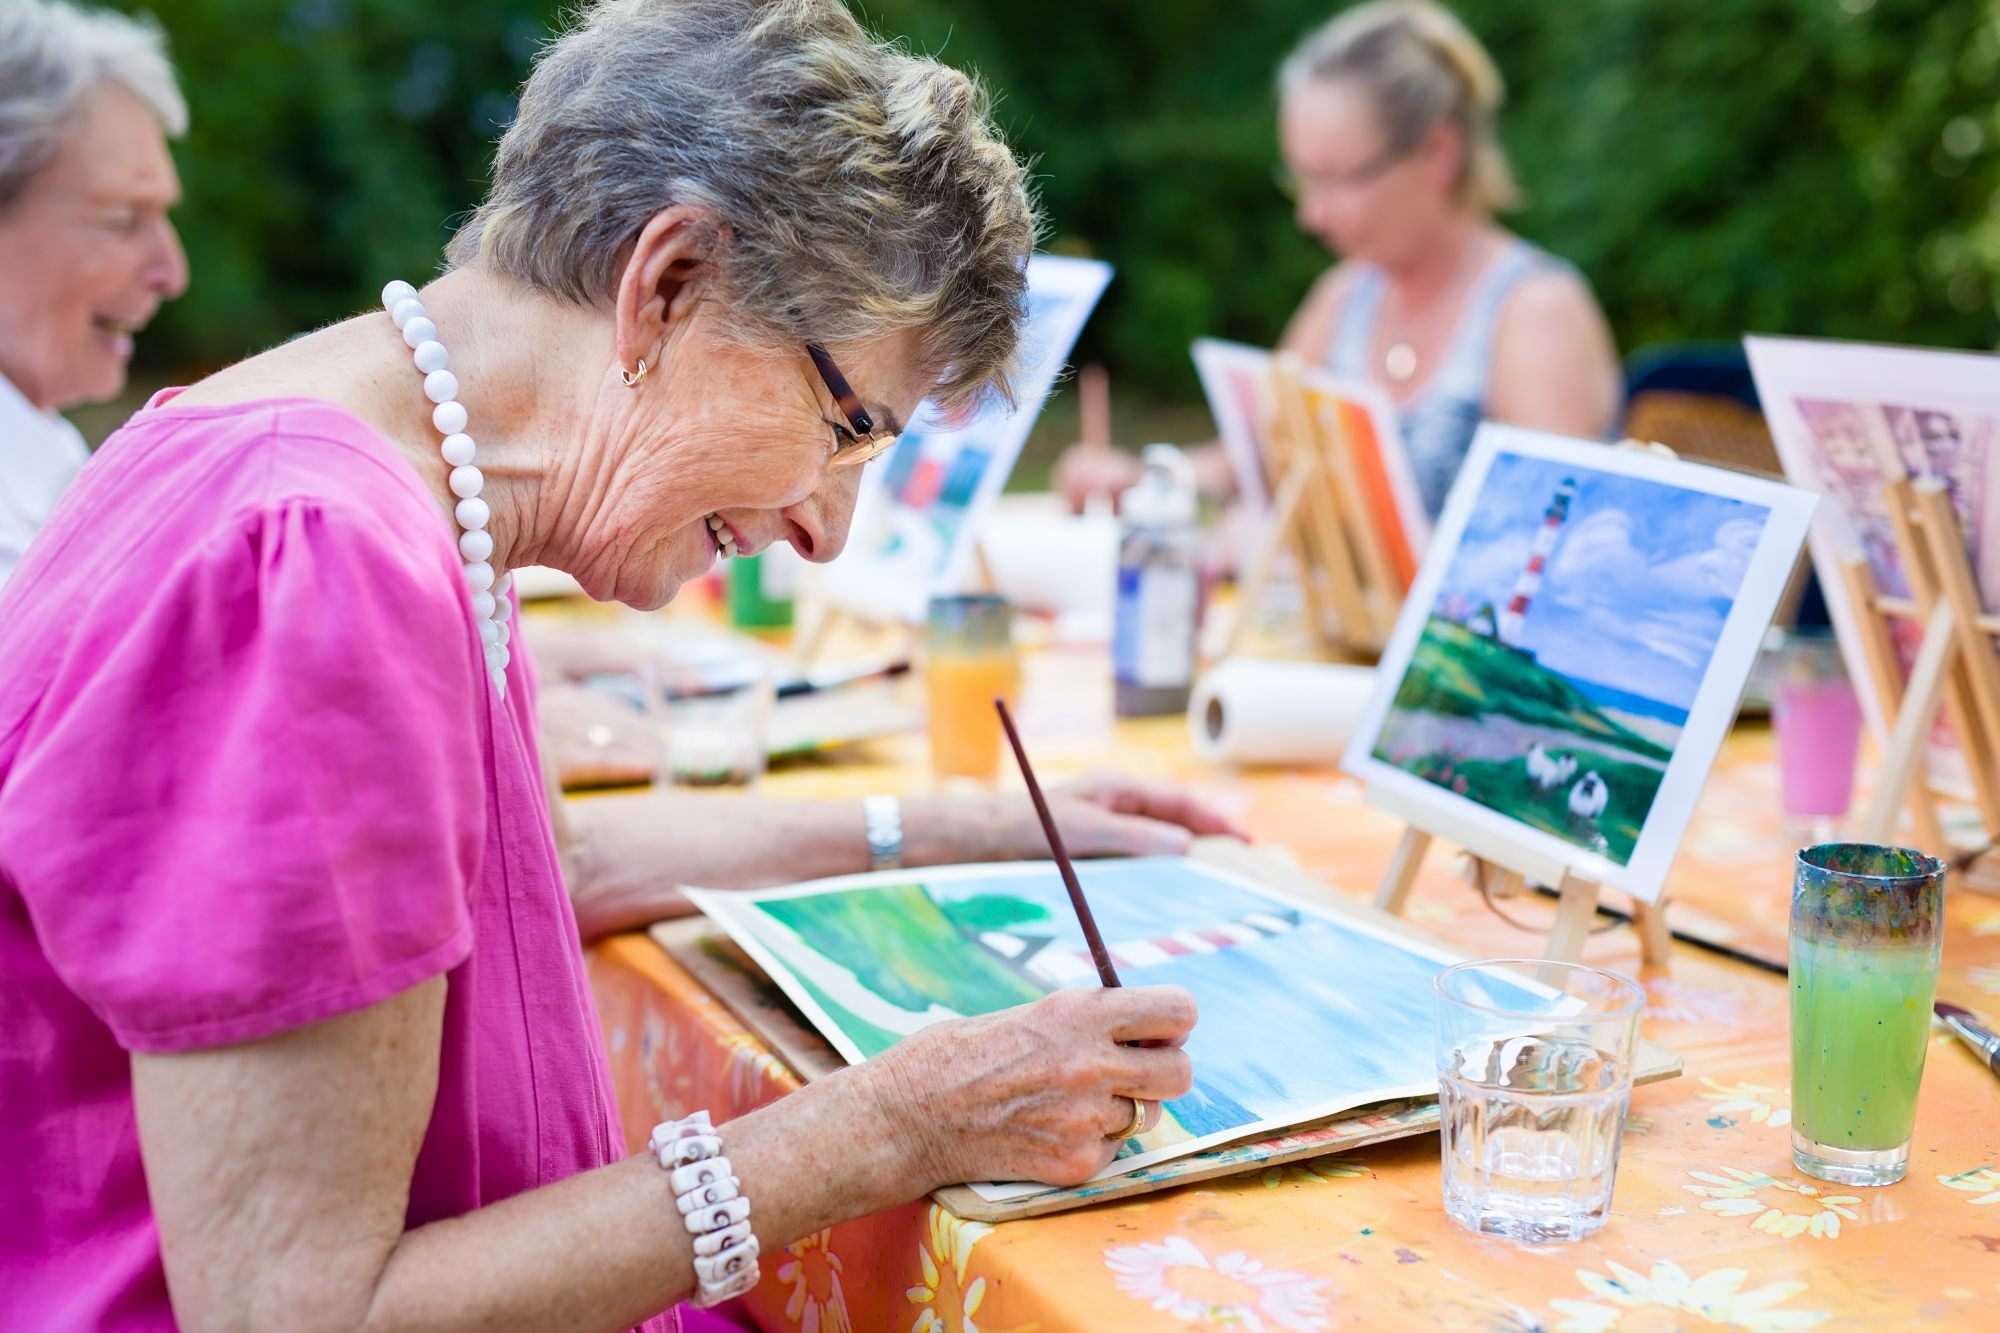 A group of seniors enjoy a community painting class and spend time socializing